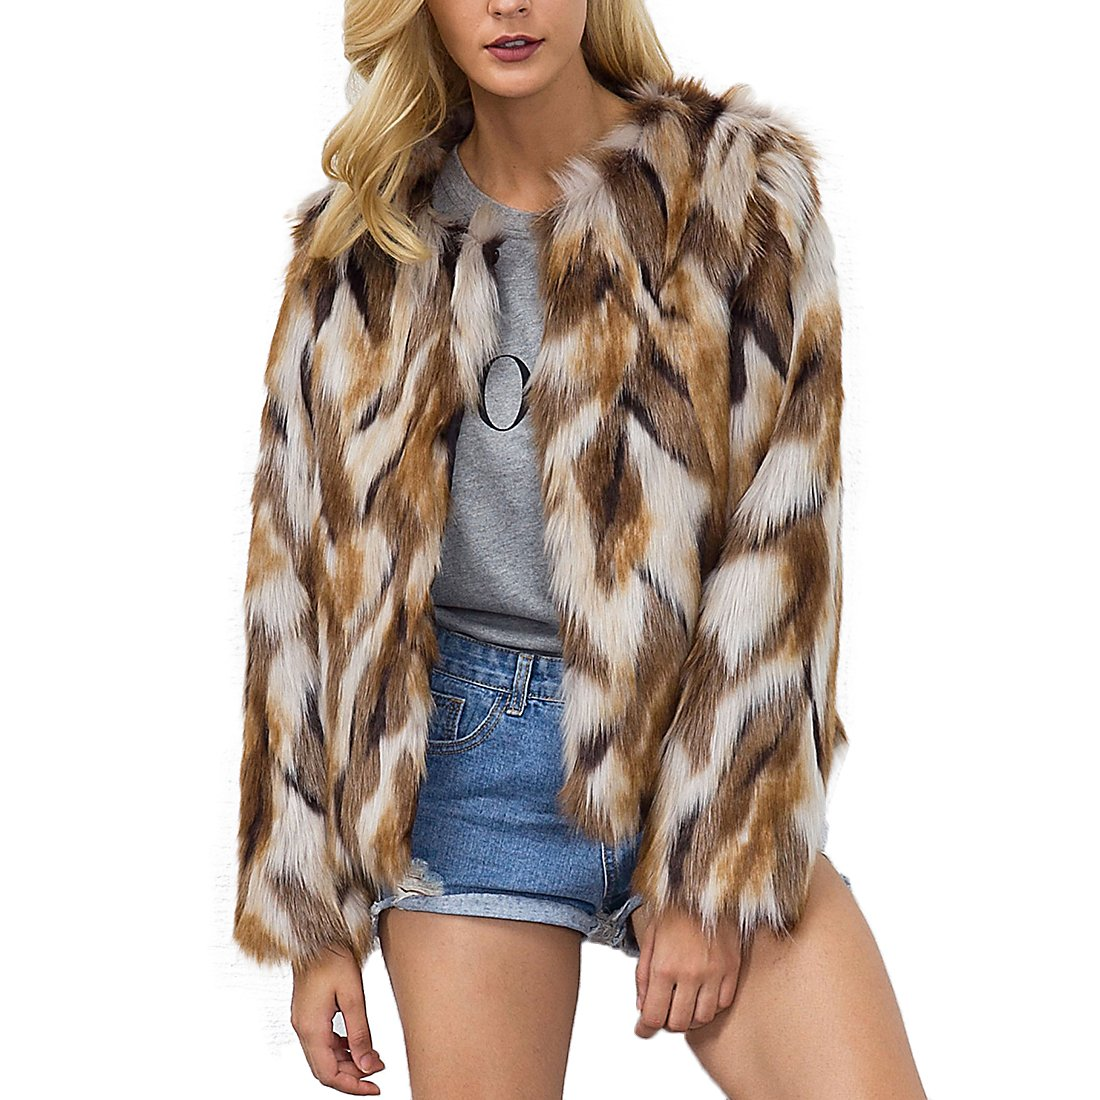 933a30d67c1 Womens Winter Warm Colorful Faux Fur Coat Chic Jacket Cardigan Outerwear  Tops for Party Club Cocktail